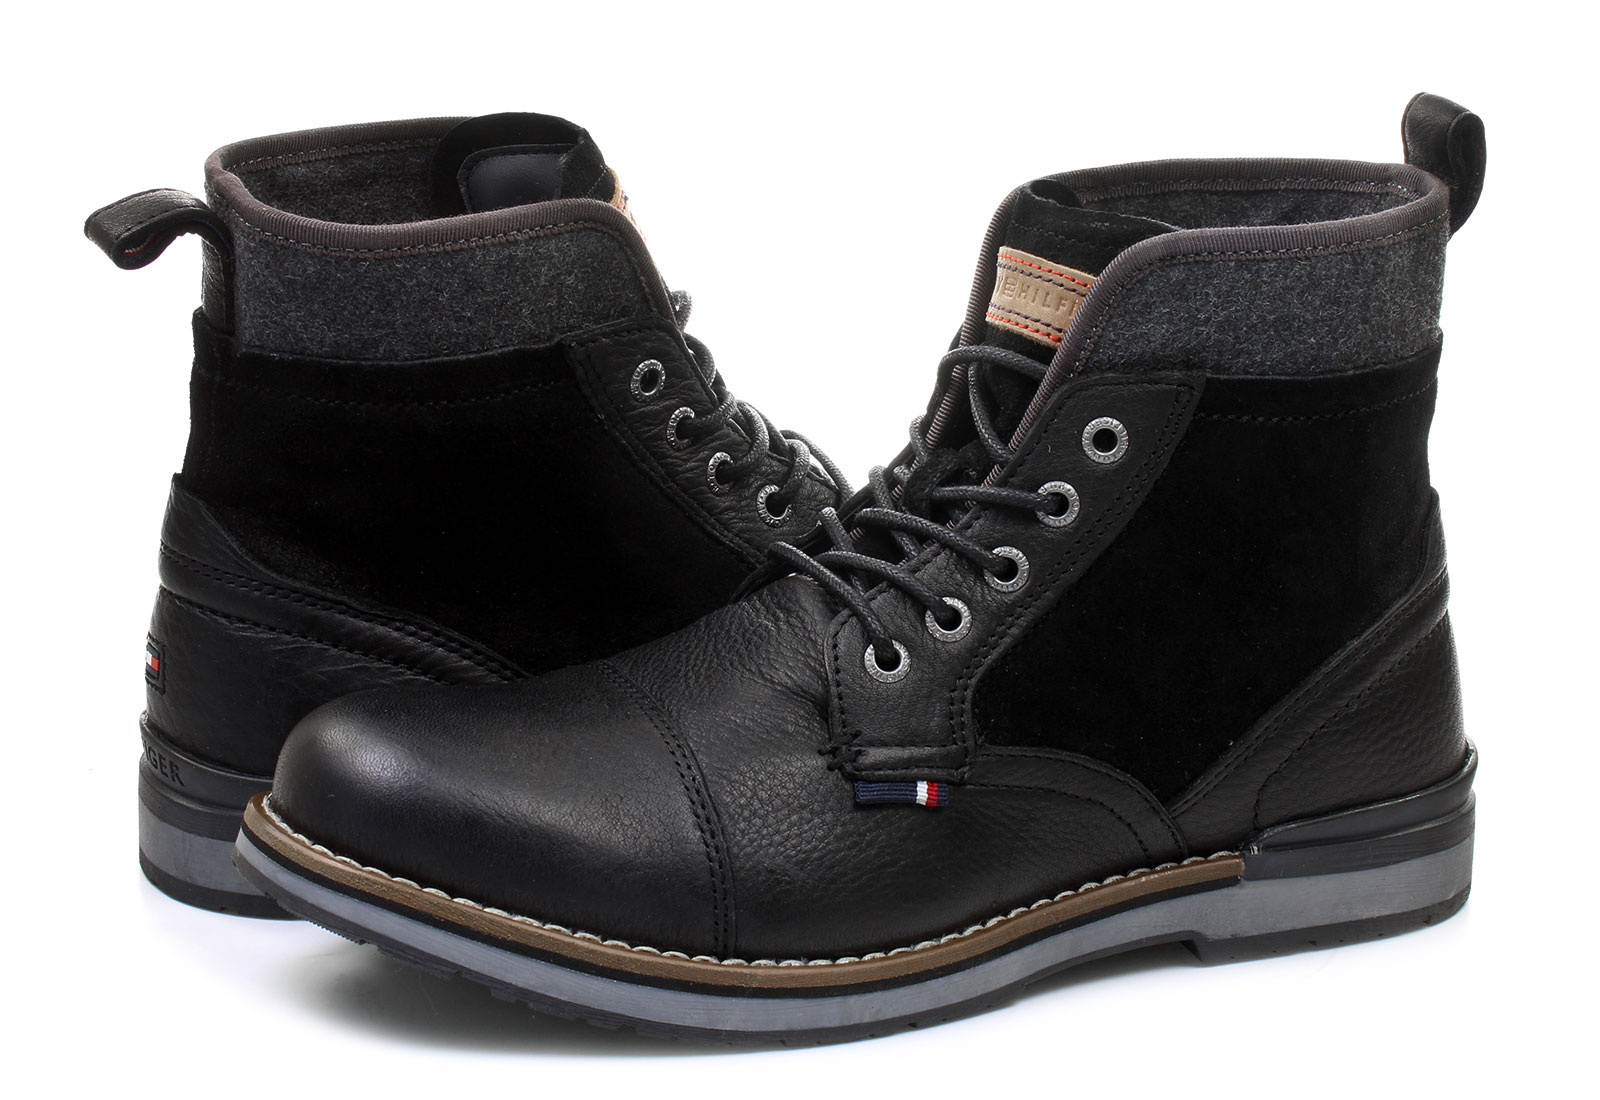 Tommy Hilfiger Bakancs - Rover 1c - 16F-1481-990 - Office Shoes ... 9ca465f666